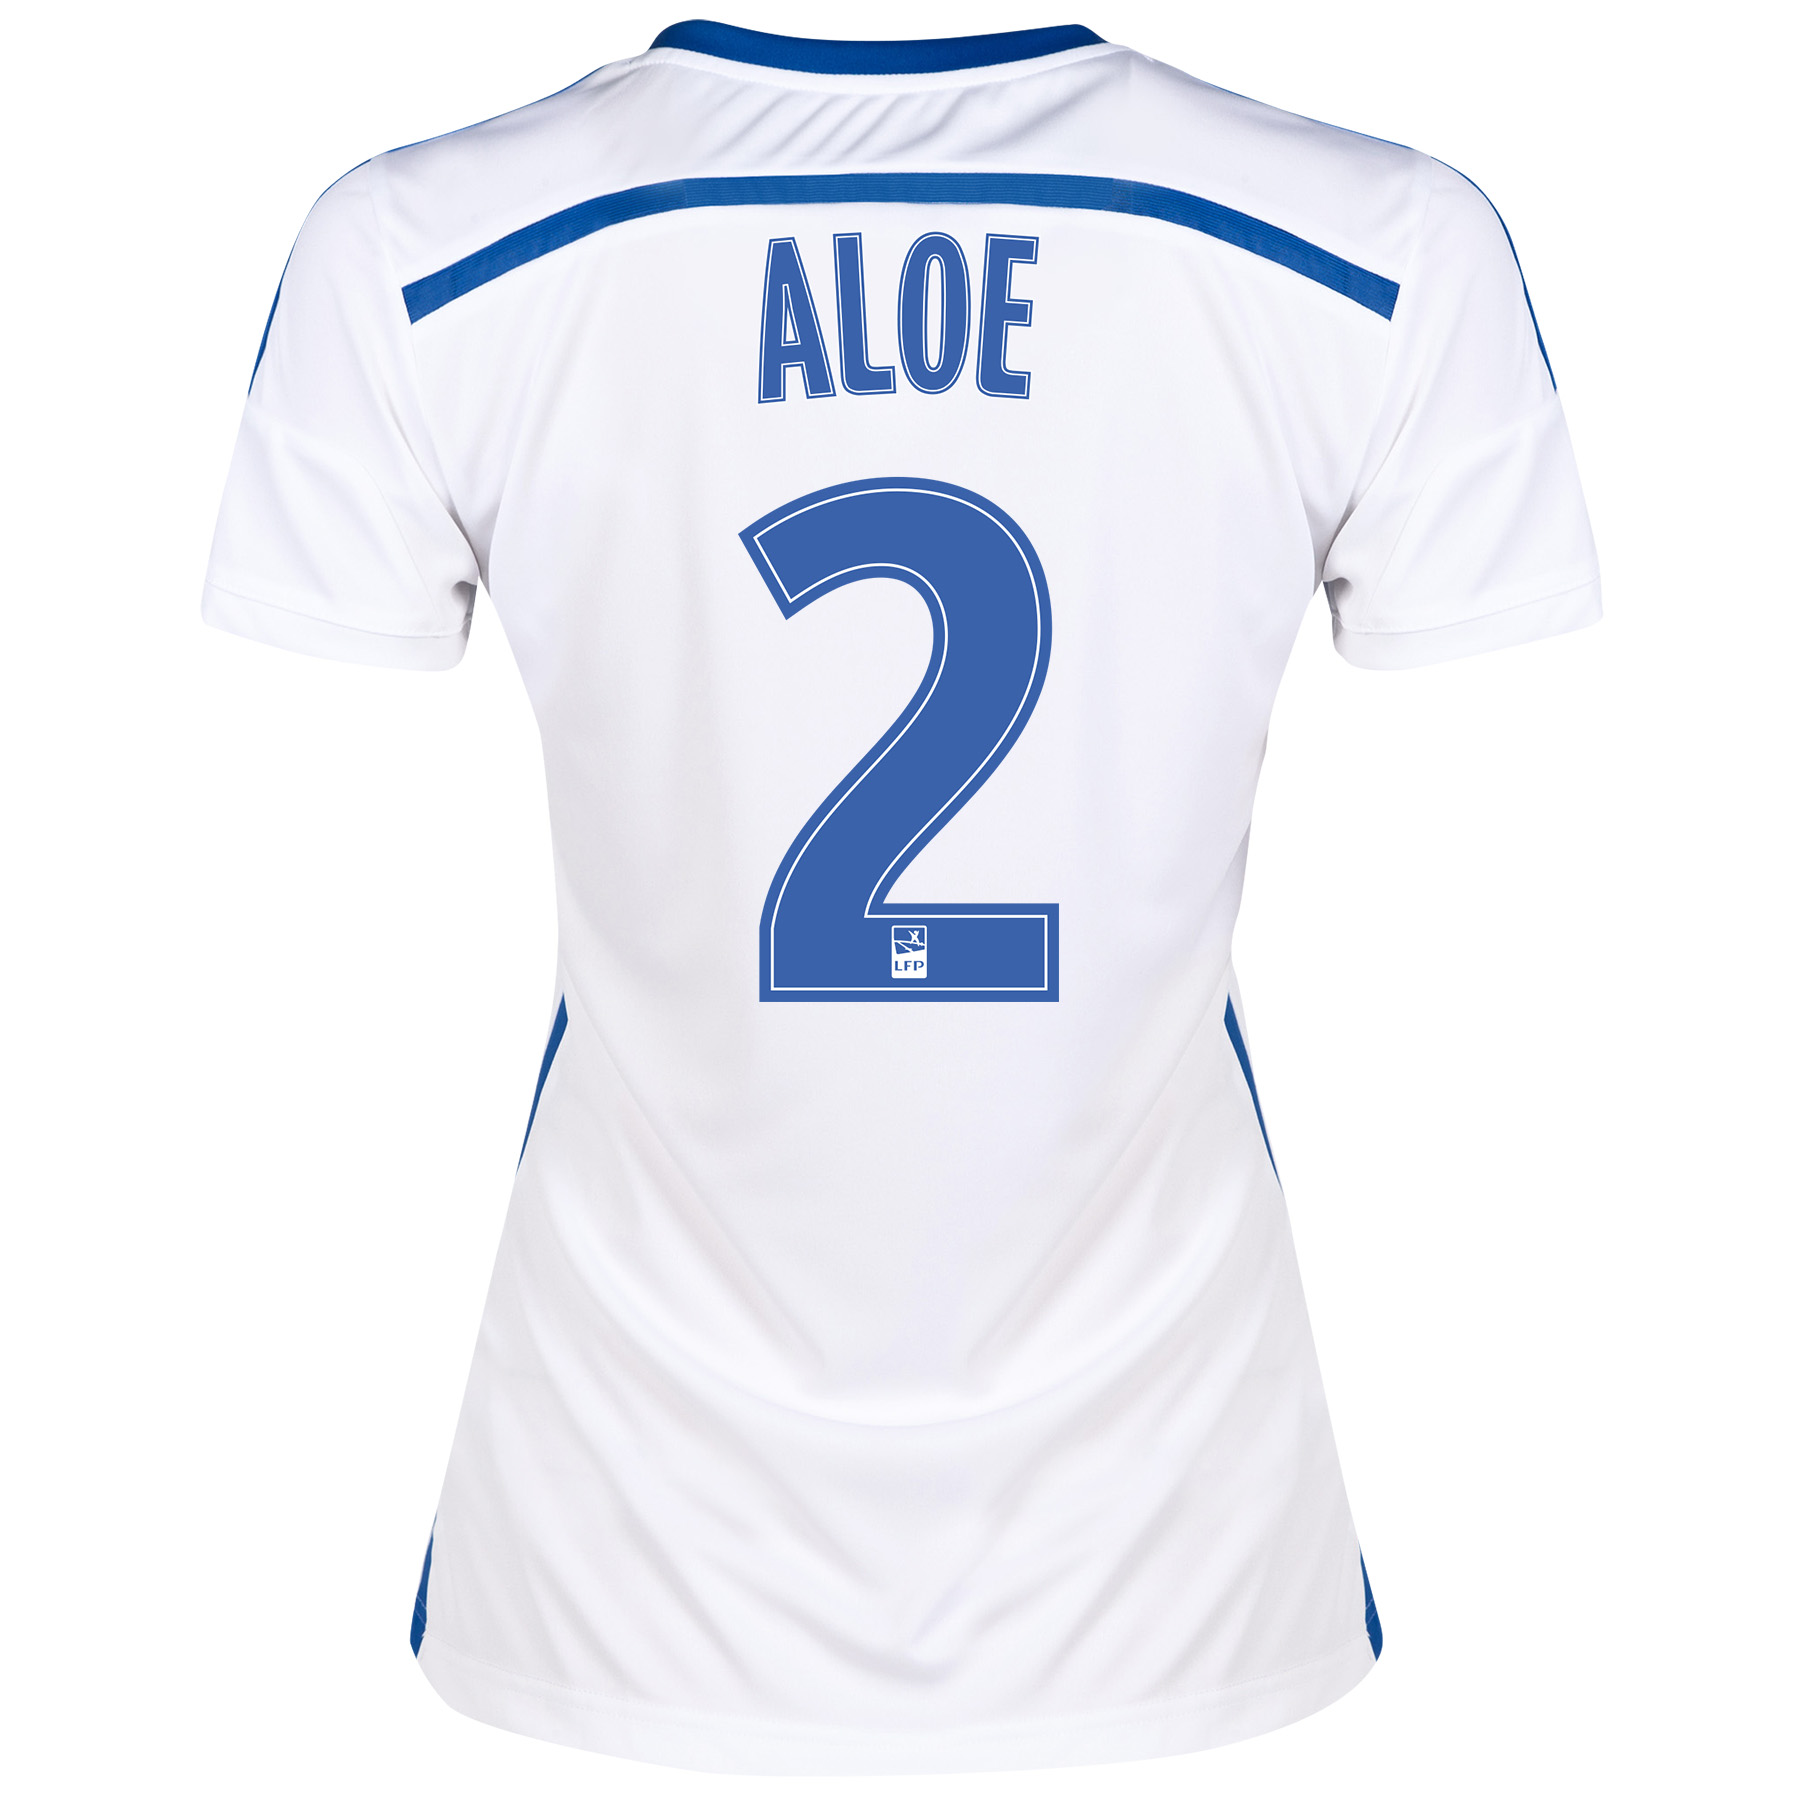 Olympique de Marseille Home Shirt Short Sleeve - Womens 2014/15 White with Aloe 2 printing